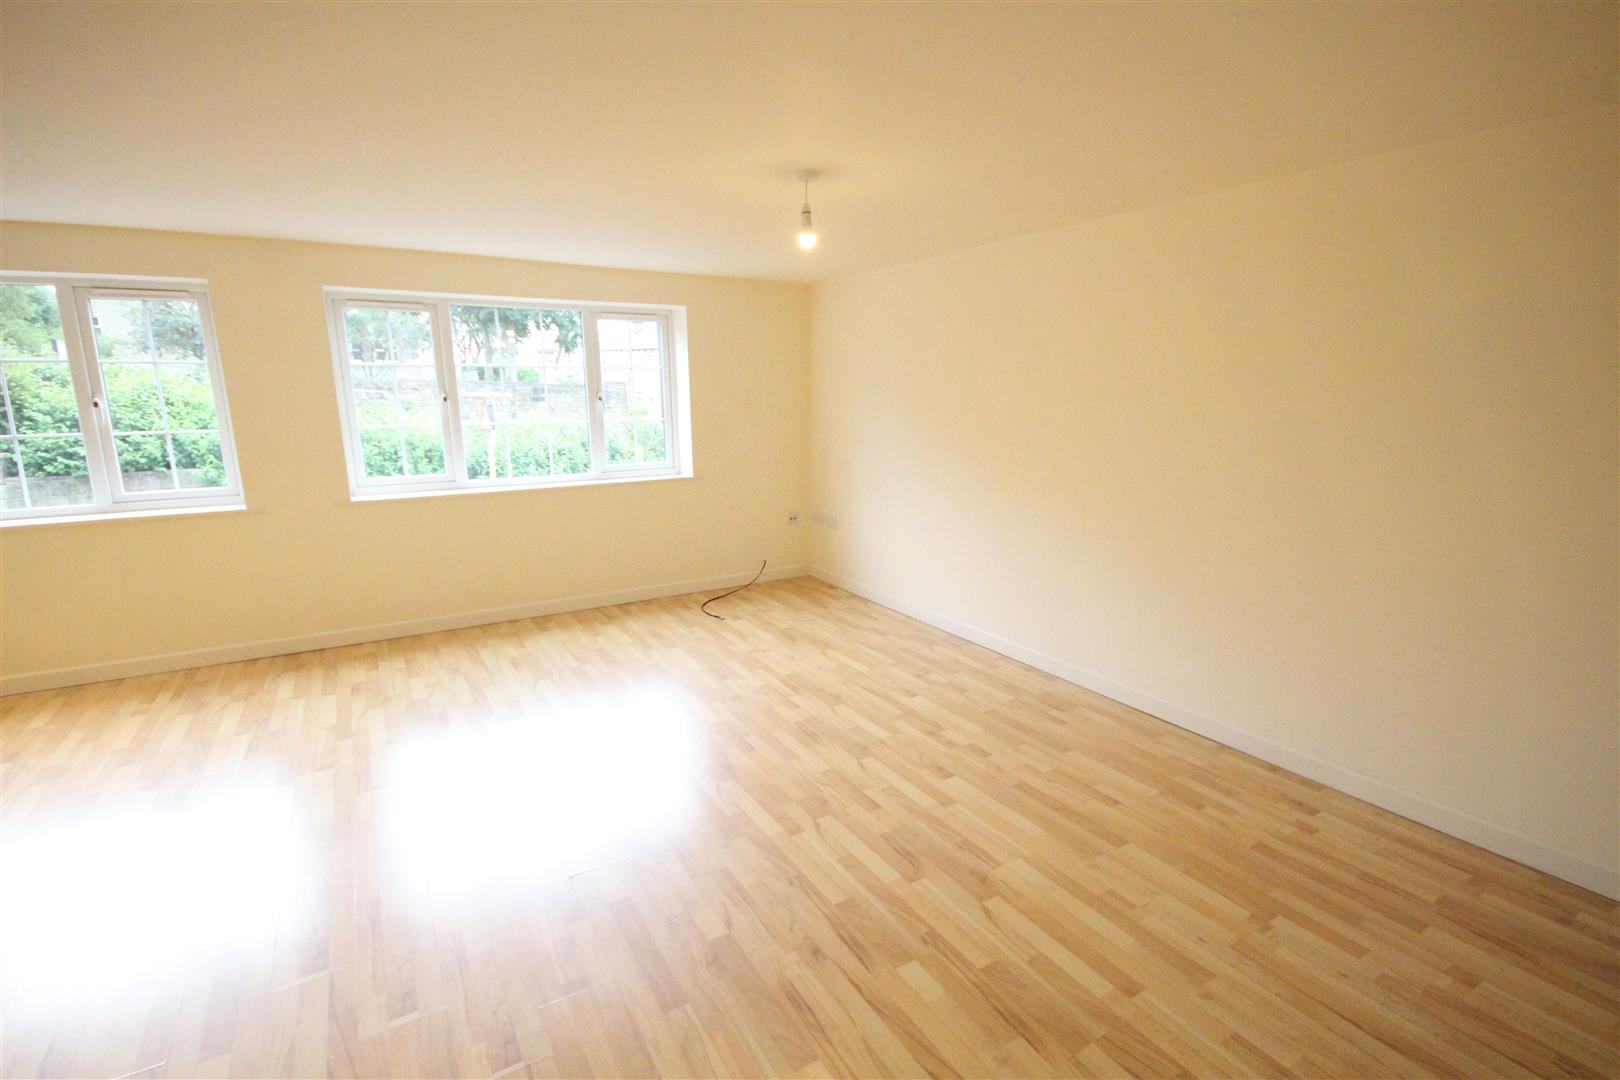 2 bedroom apartment For Sale in Colne - IMG_3448.jpg